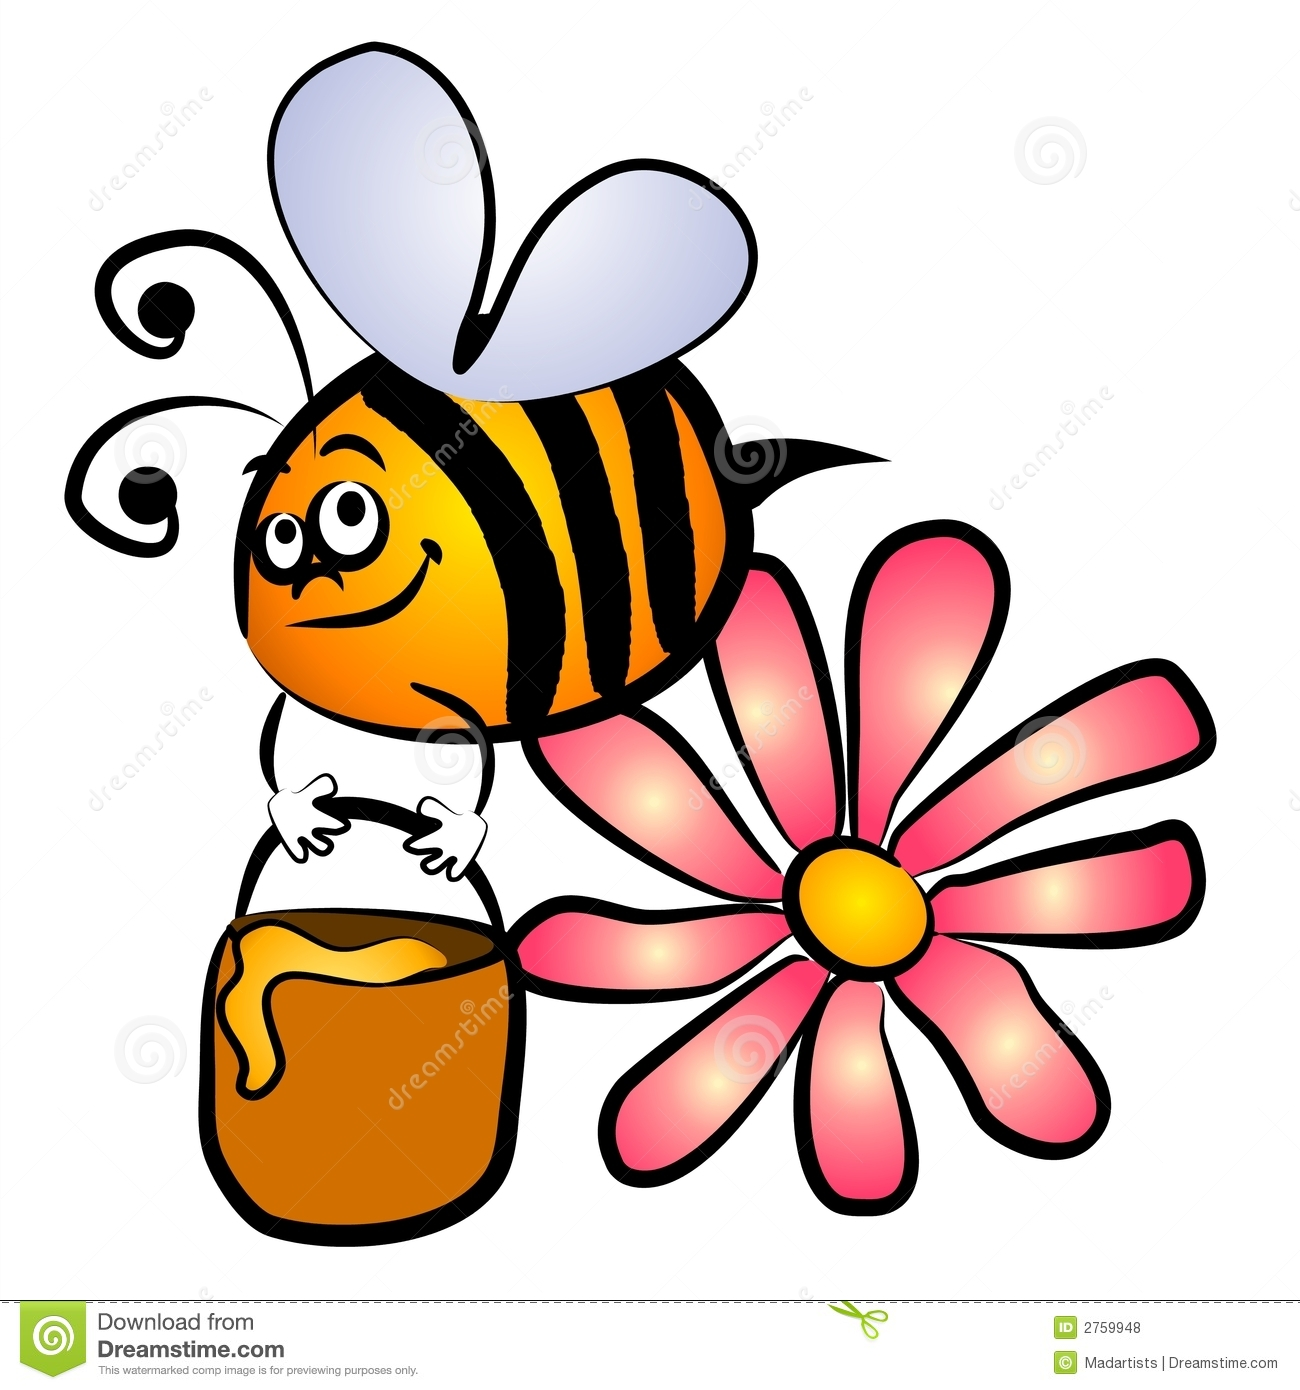 Honey clipart #3, Download drawings